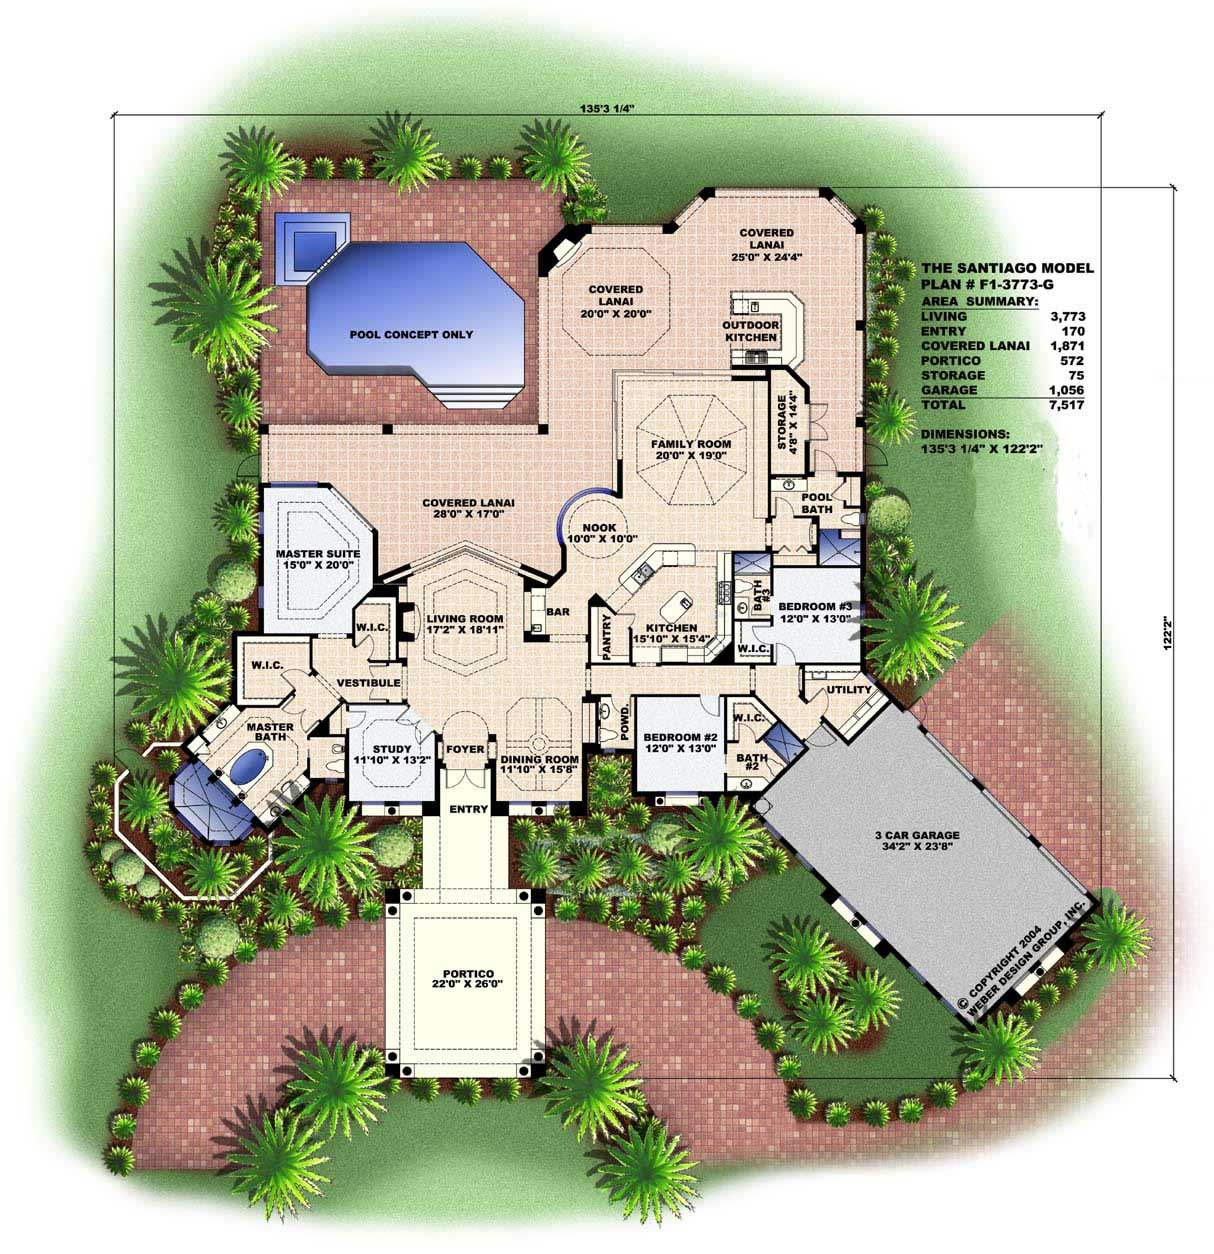 walkout basement, insulated concrete forms, passive solar, 1500 1700 sq ft, timber frame, on icf florida house plans